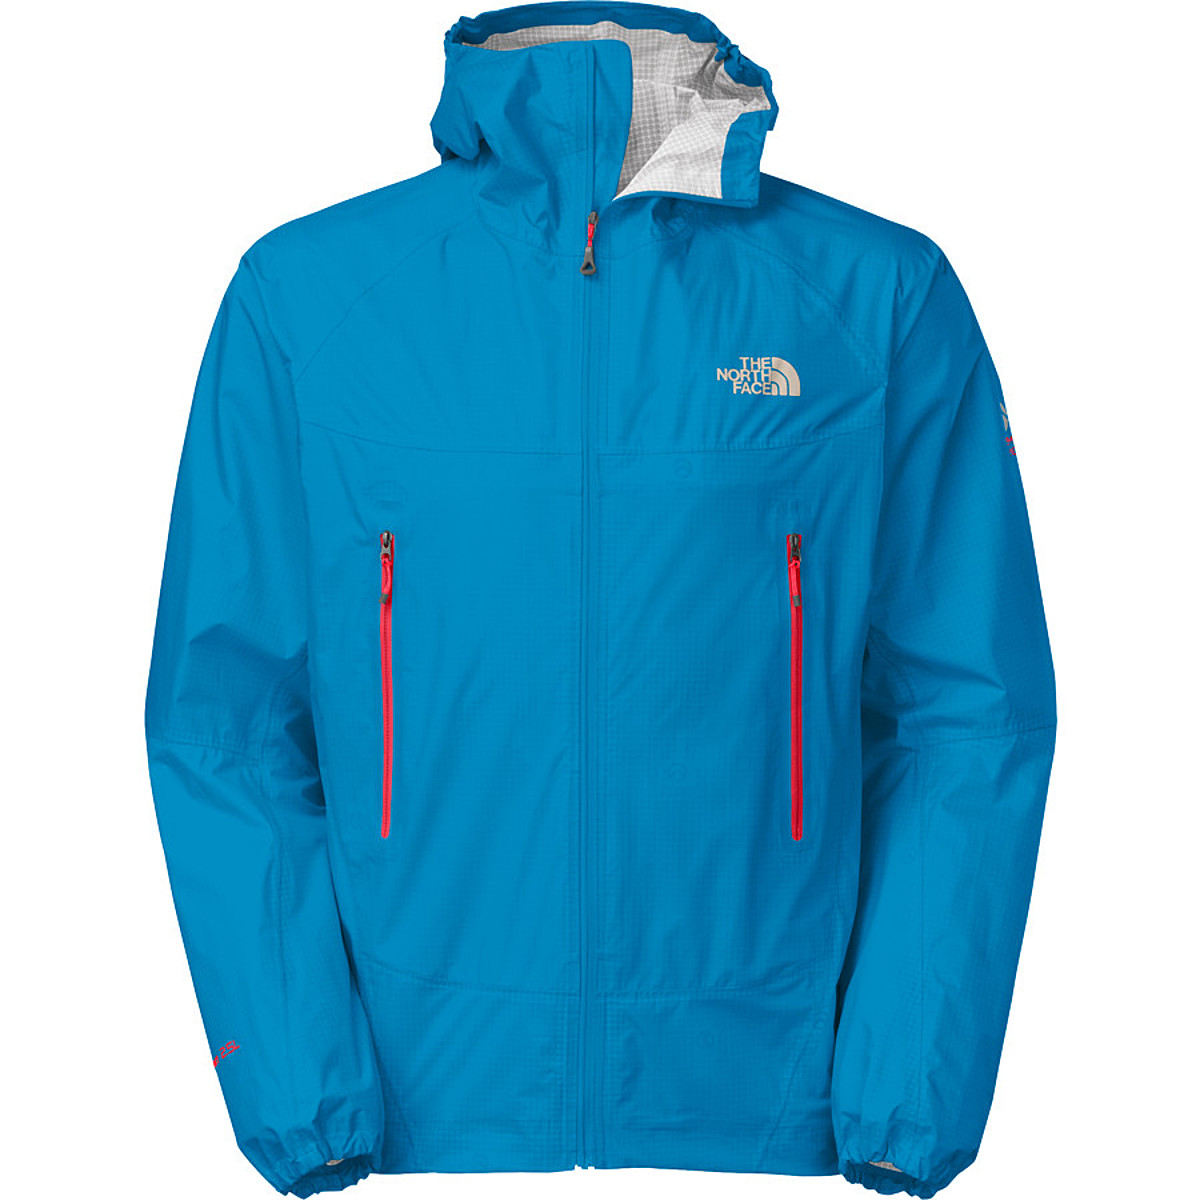 The North Face Verto Storm Jacket Reviews - Trailspace.com